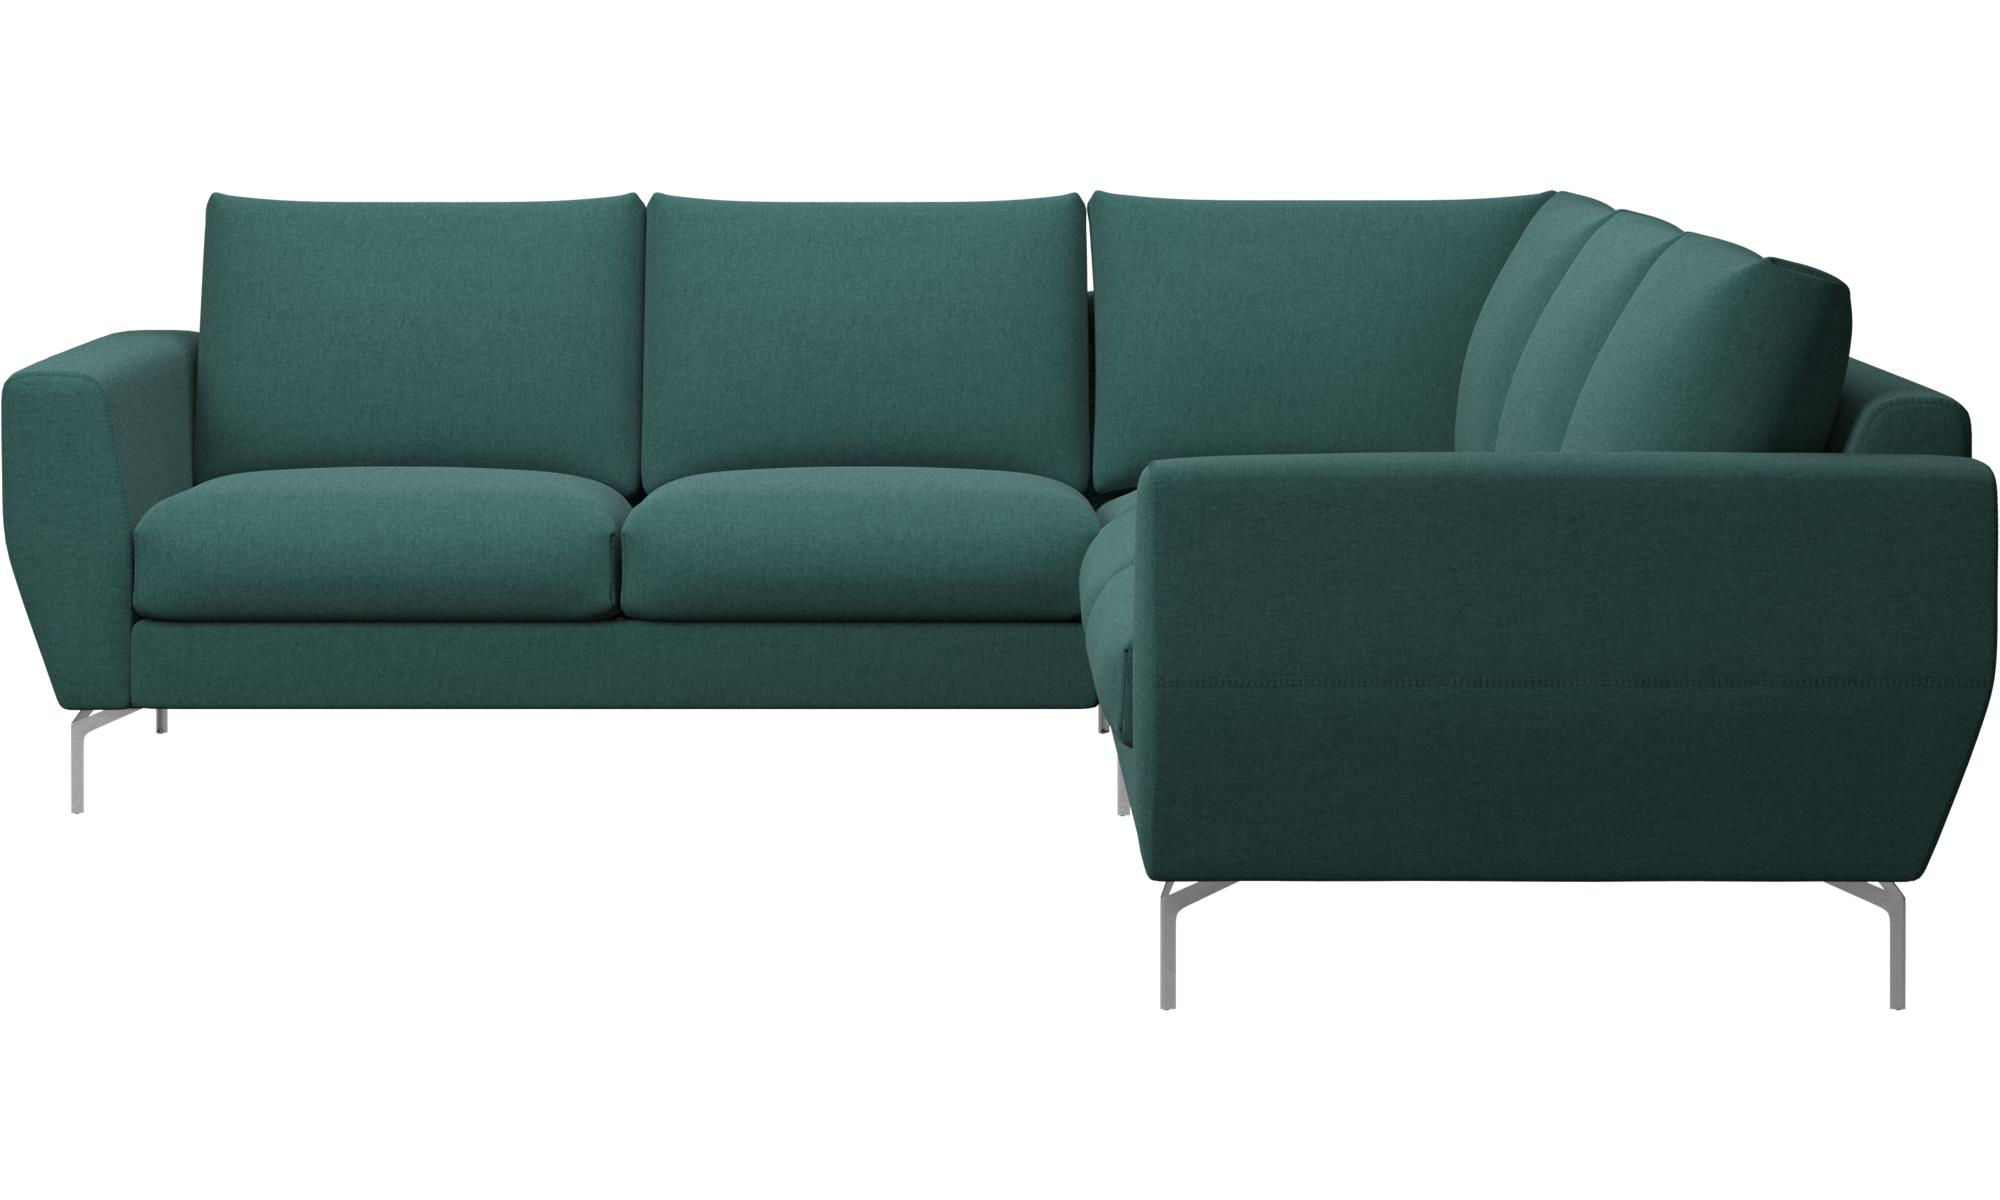 sofa stores edinburgh dania sofas under 999 edinburghs designer furniture store boconcept